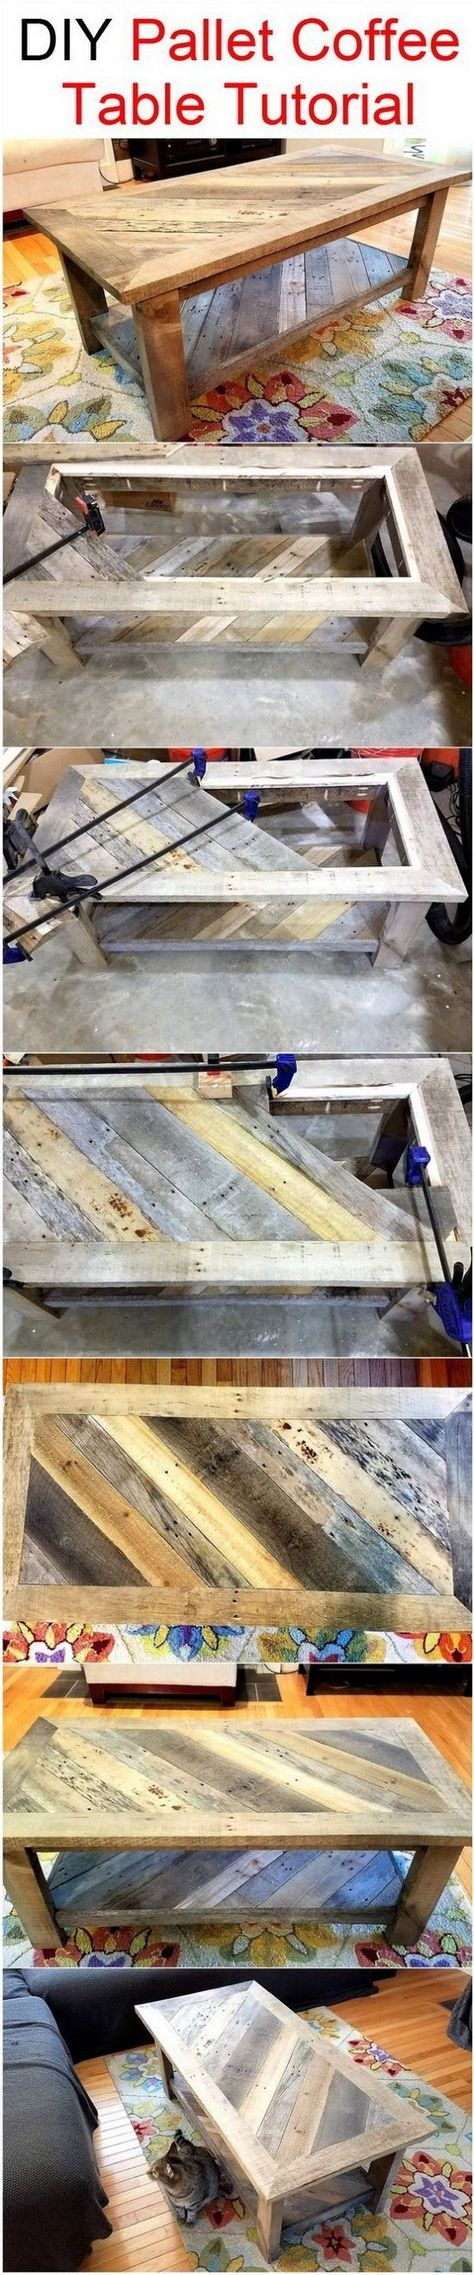 DIY Pallet Coffee Table. Pallet furniture is very popular these days. Here is another version to make a coffee table from shipping pallets for your inspiration.